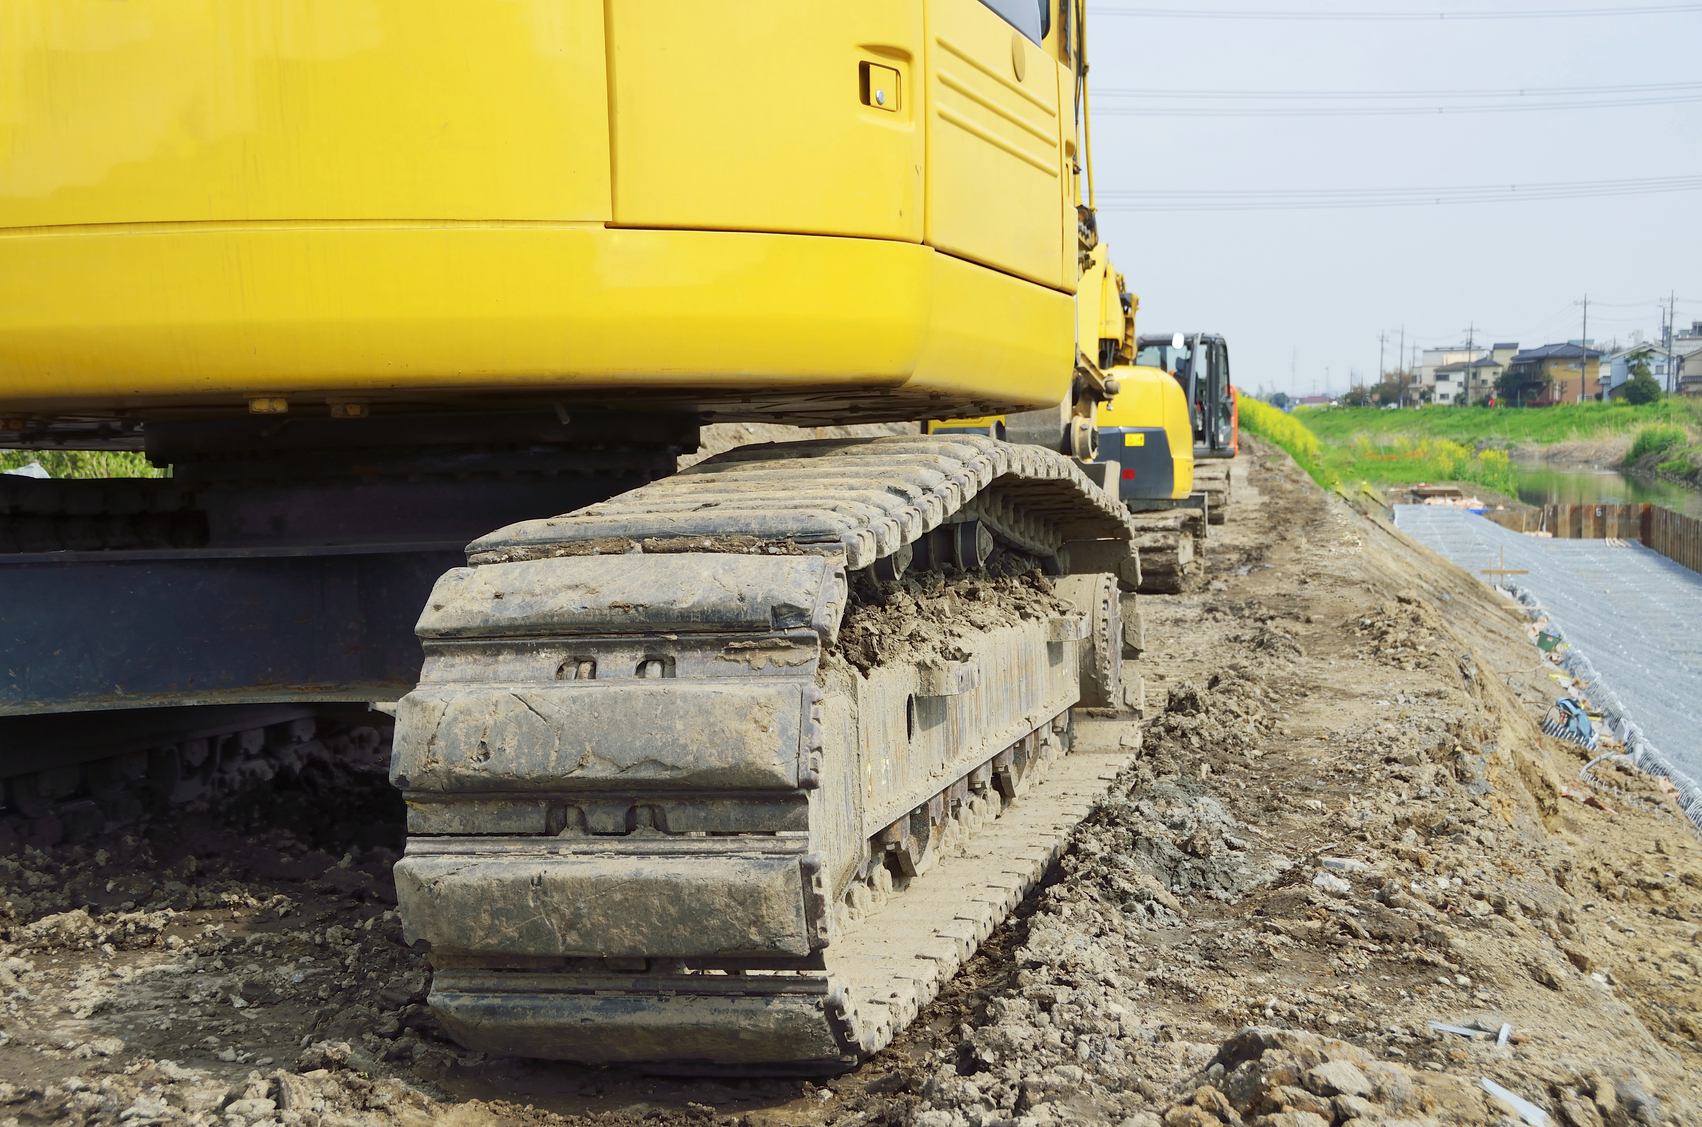 Construction heavy equipment; caterpillar of excavator